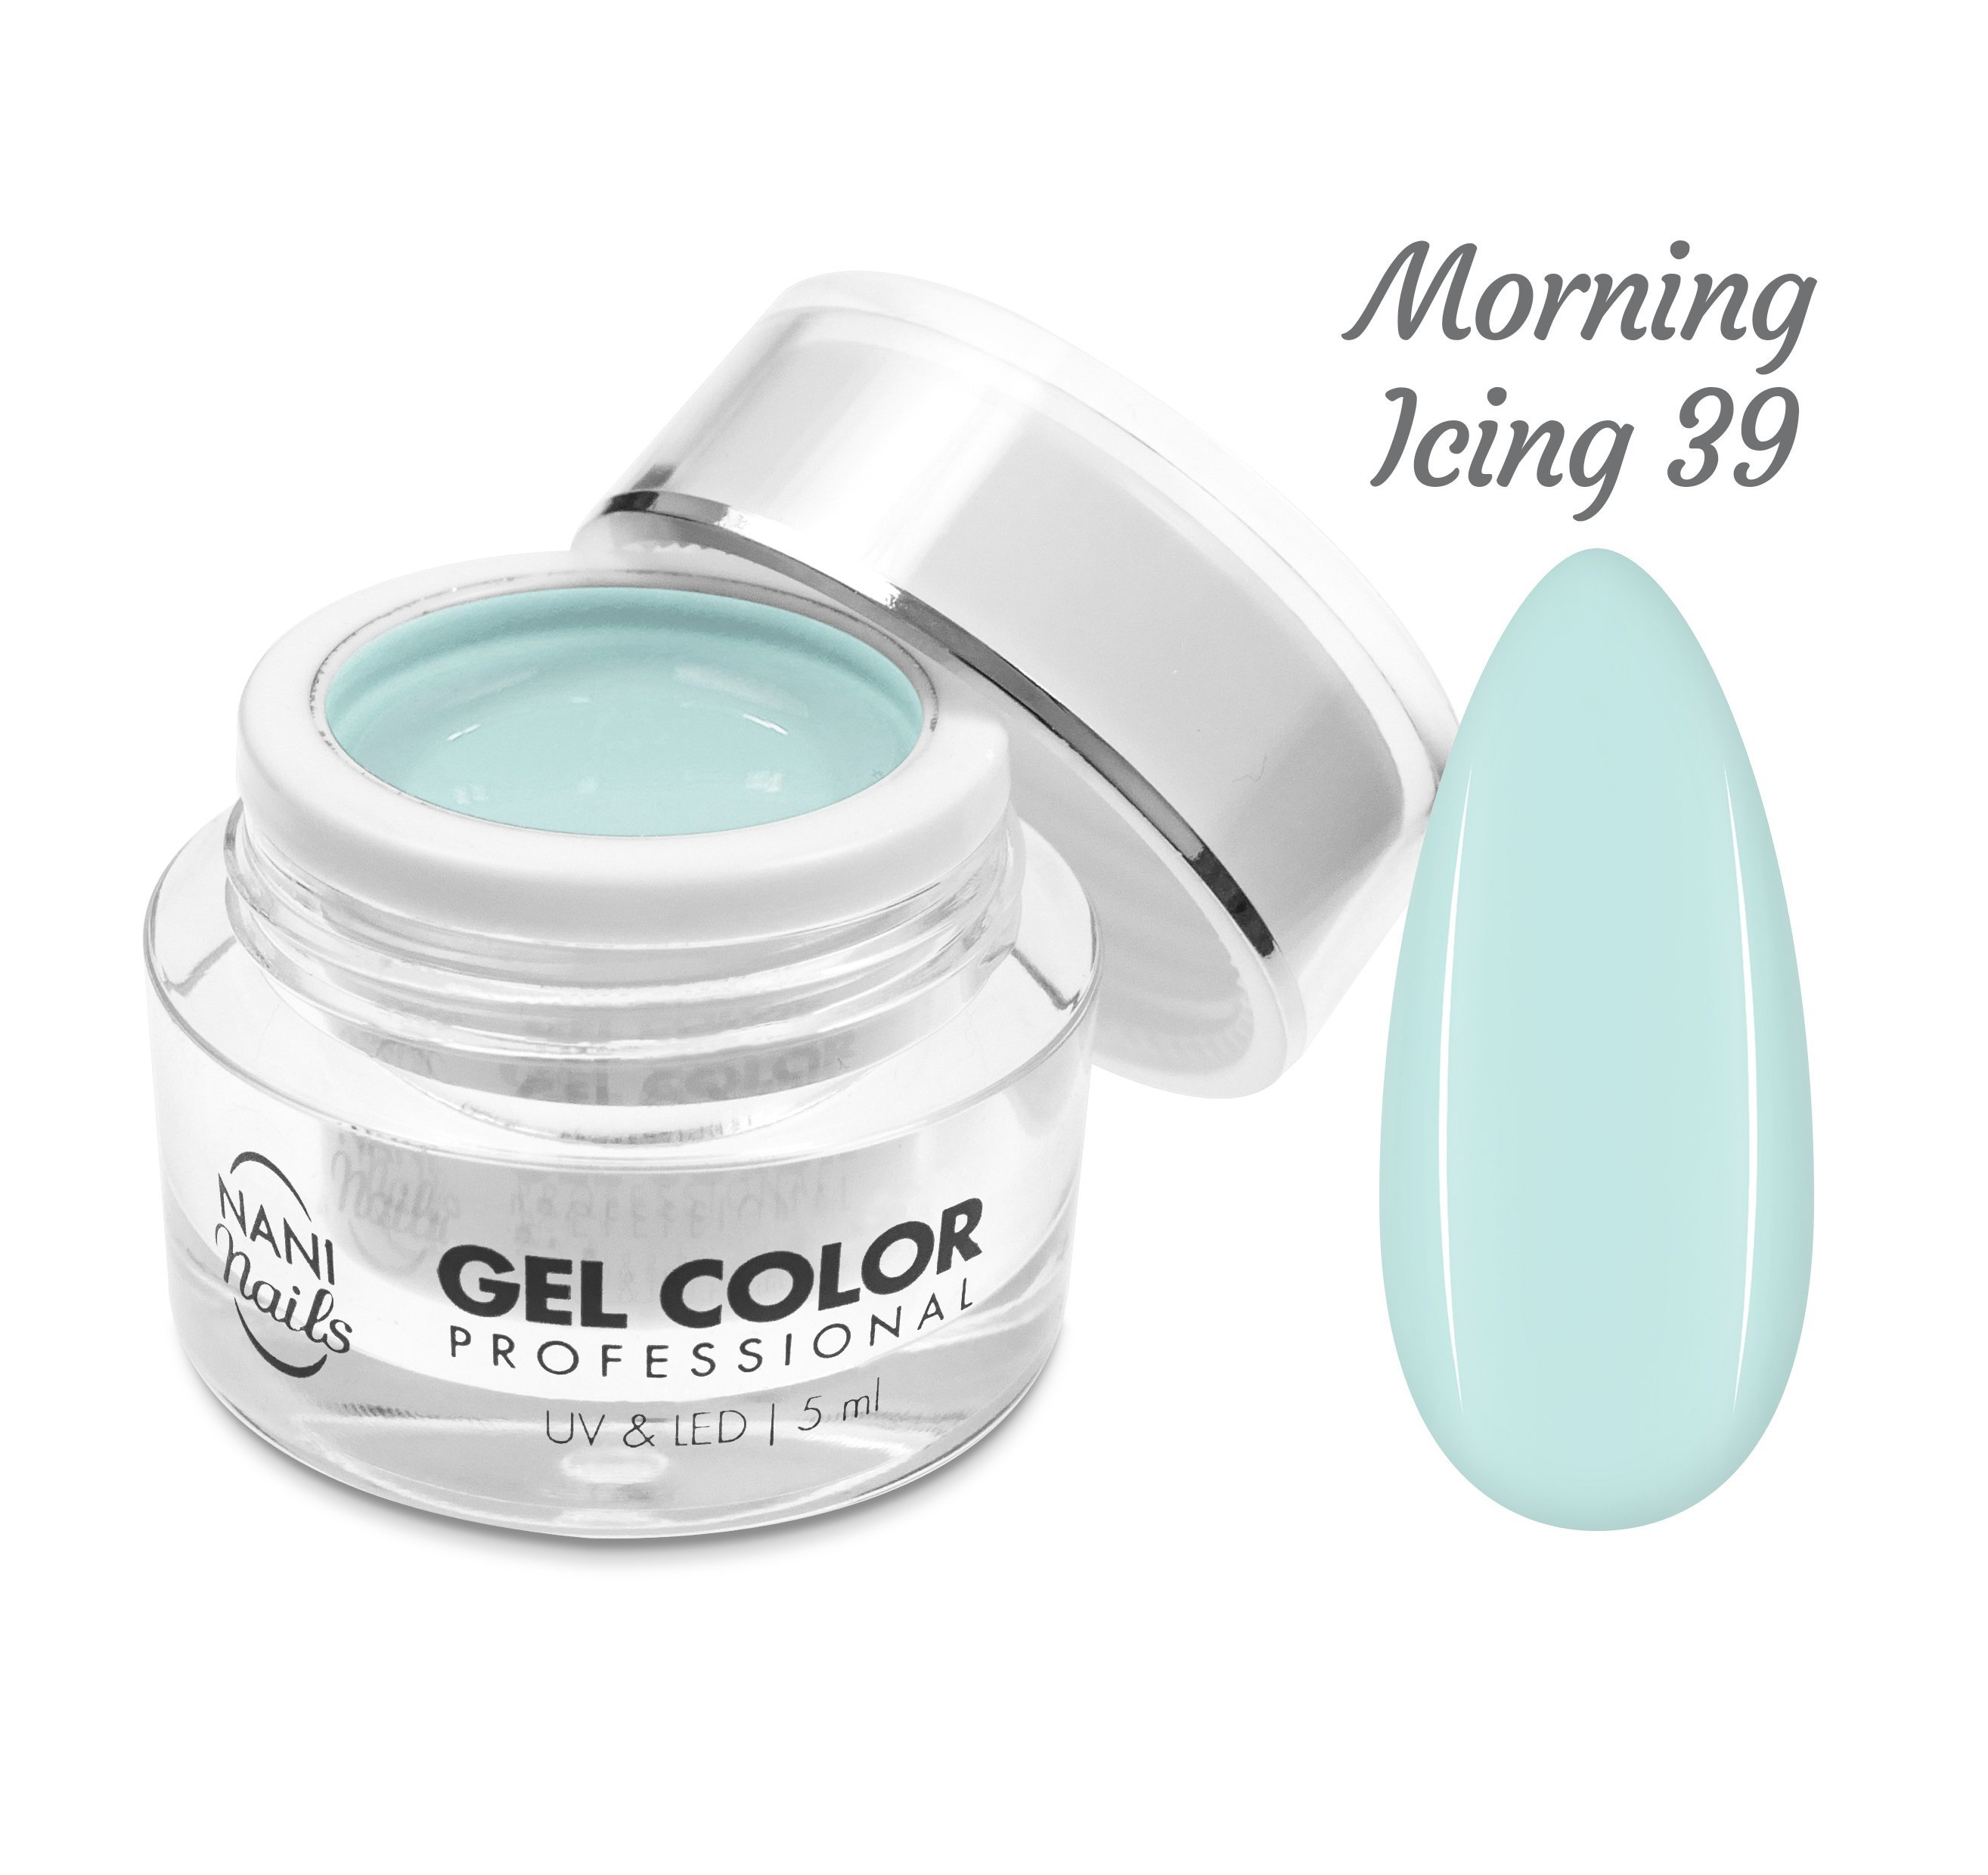 NANI UV/LED gél Professional 5 ml - Morning Icing